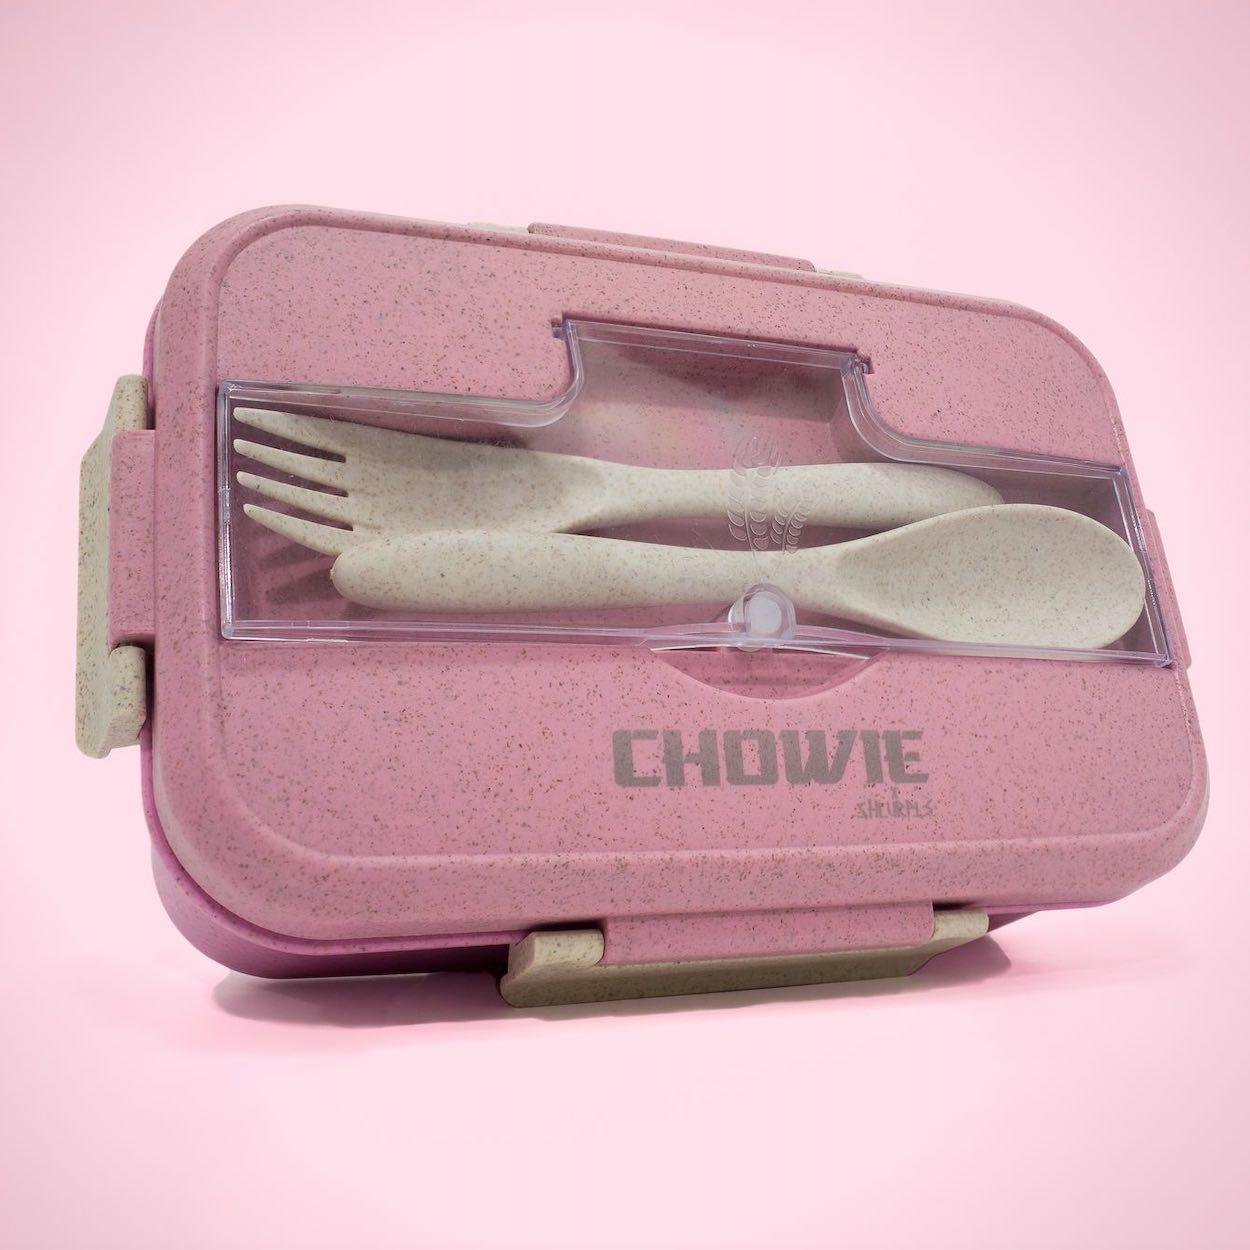 Shlurple Wheat Straw Lunch Box - Pink